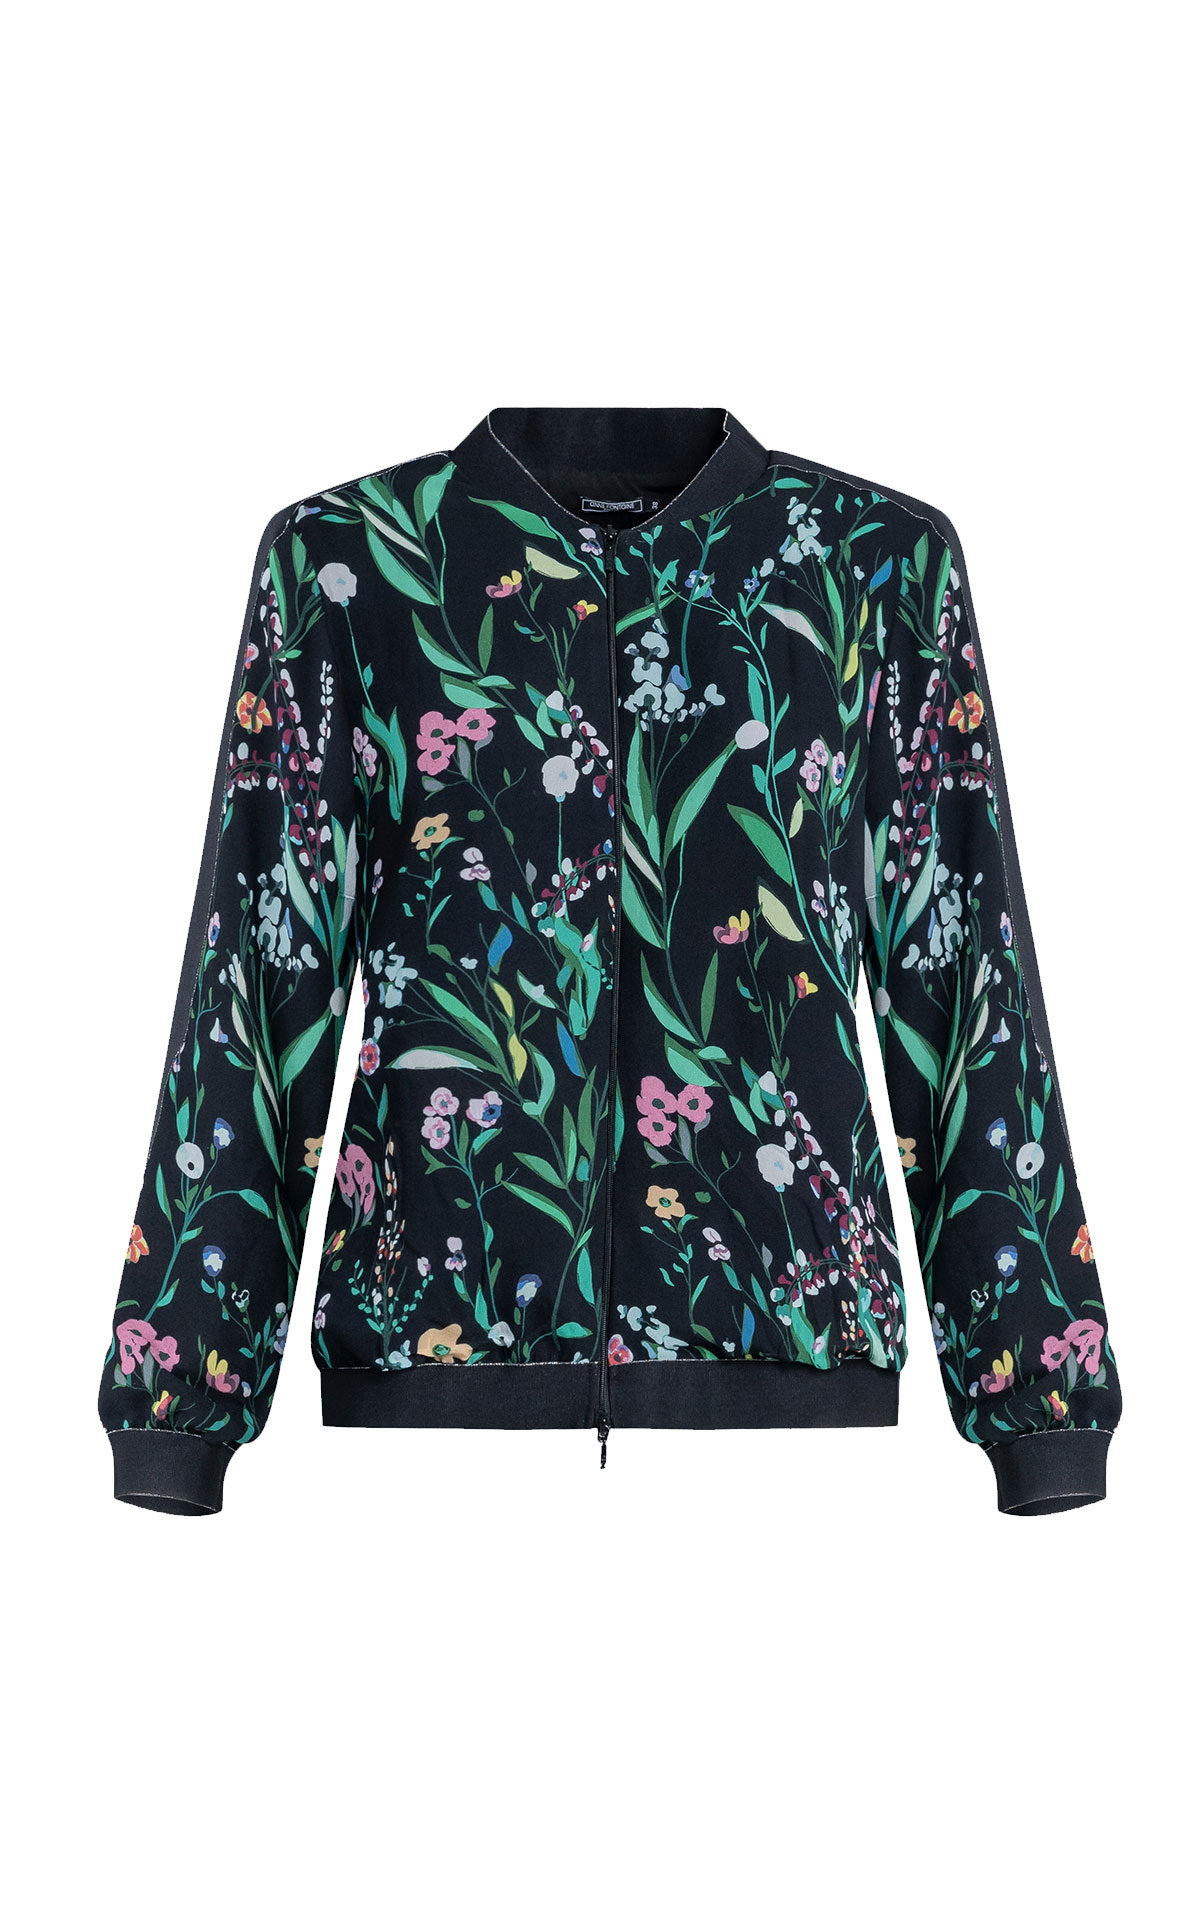 Anne Fontaine Unabelle jacket from Bicester Village